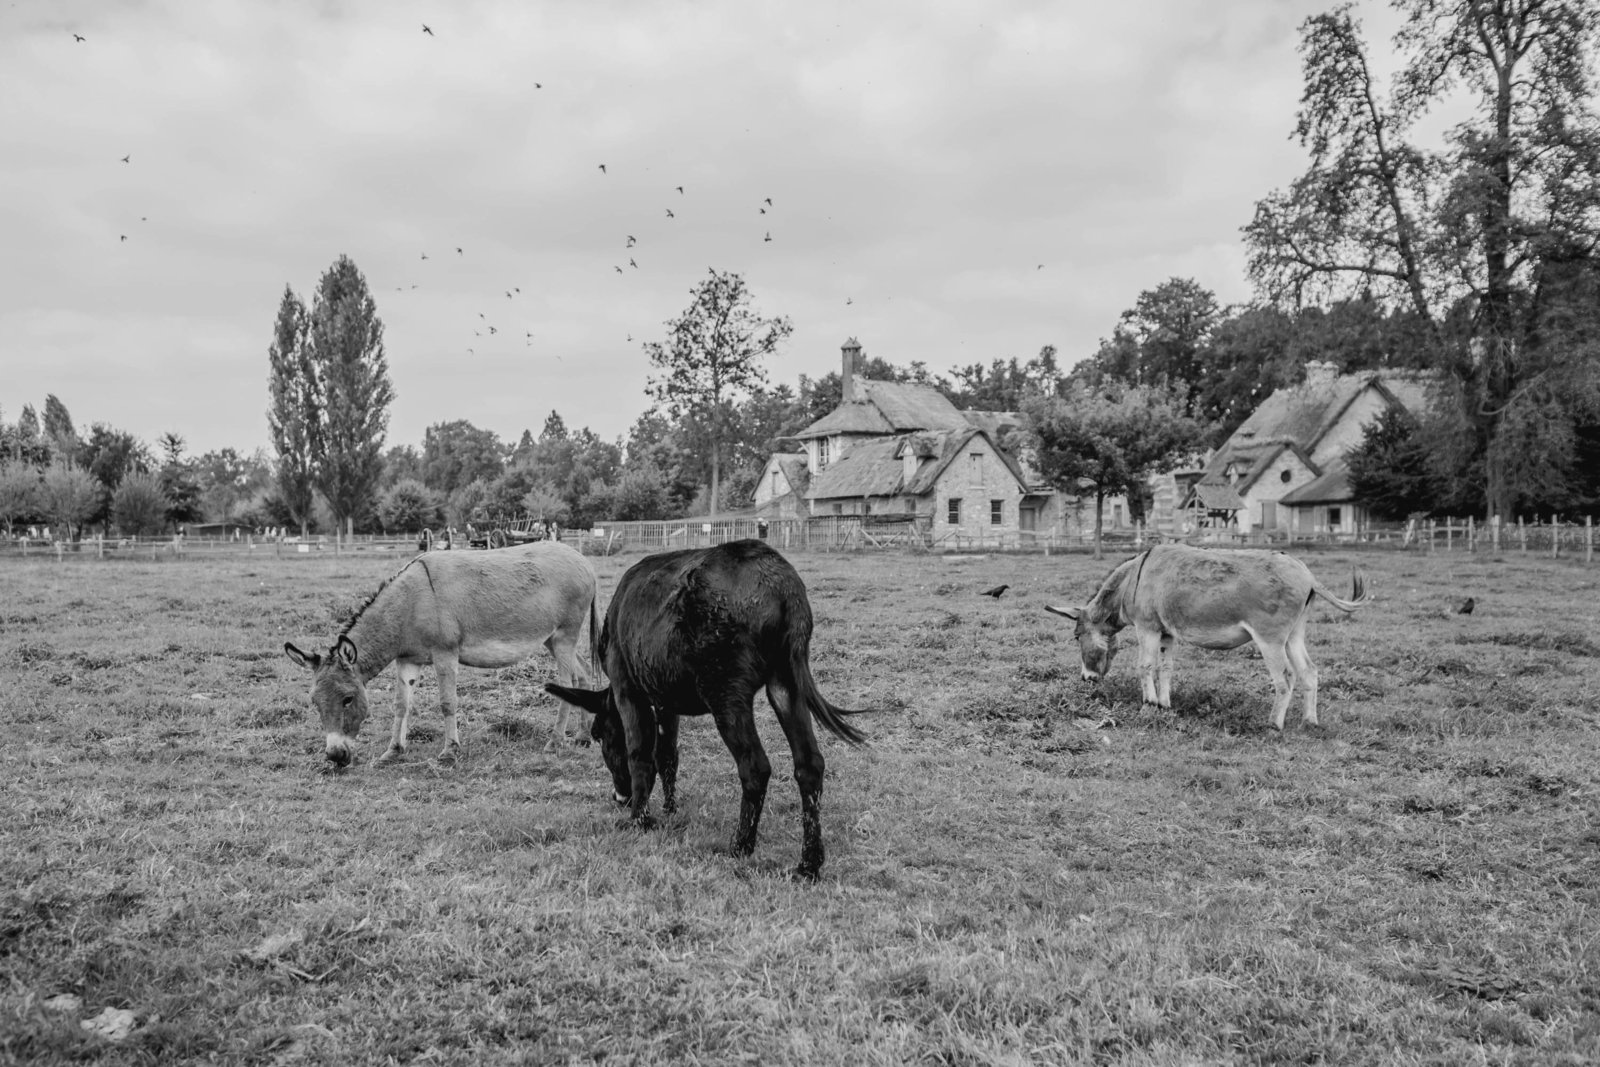 farm-donkey-marie-antoinette-hamlet-versailles-france-travel-destination-kate-timbers-photography-1692